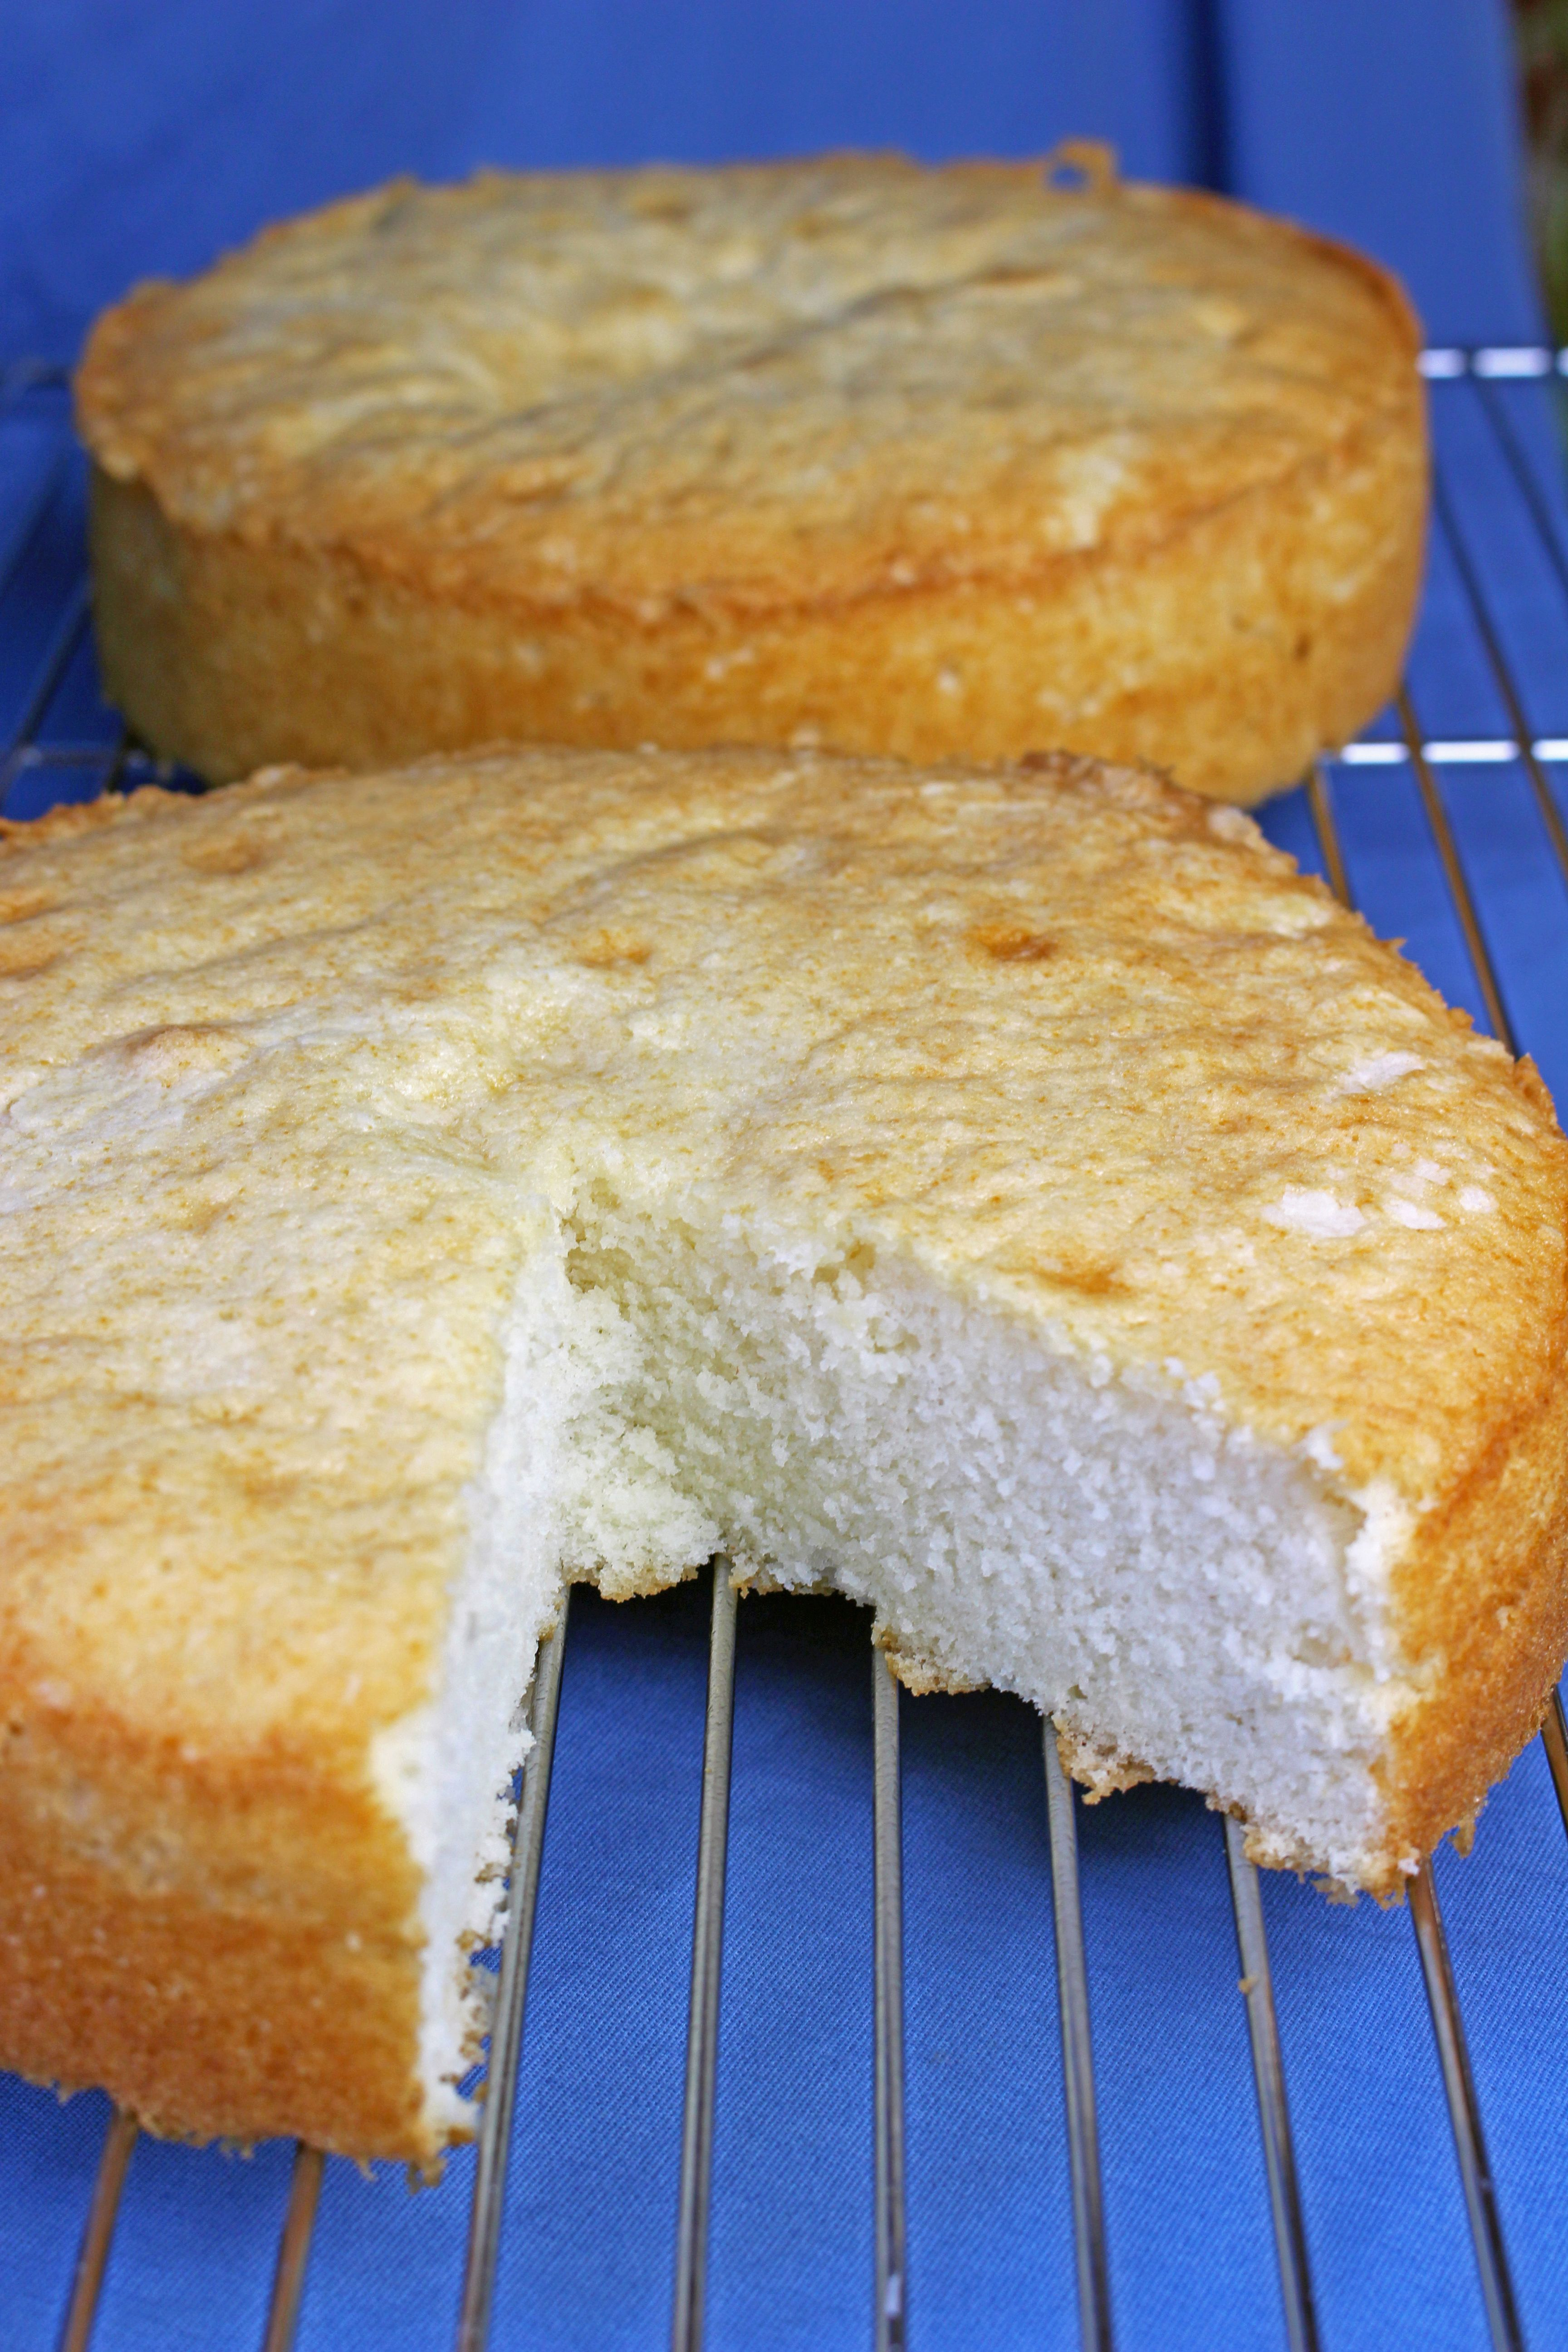 White Cake Recipe It Is Light But Dense At The Same Time Almost Like A Pound Sort Of Spongy And Airy Too Has Great Structure To Hold Up